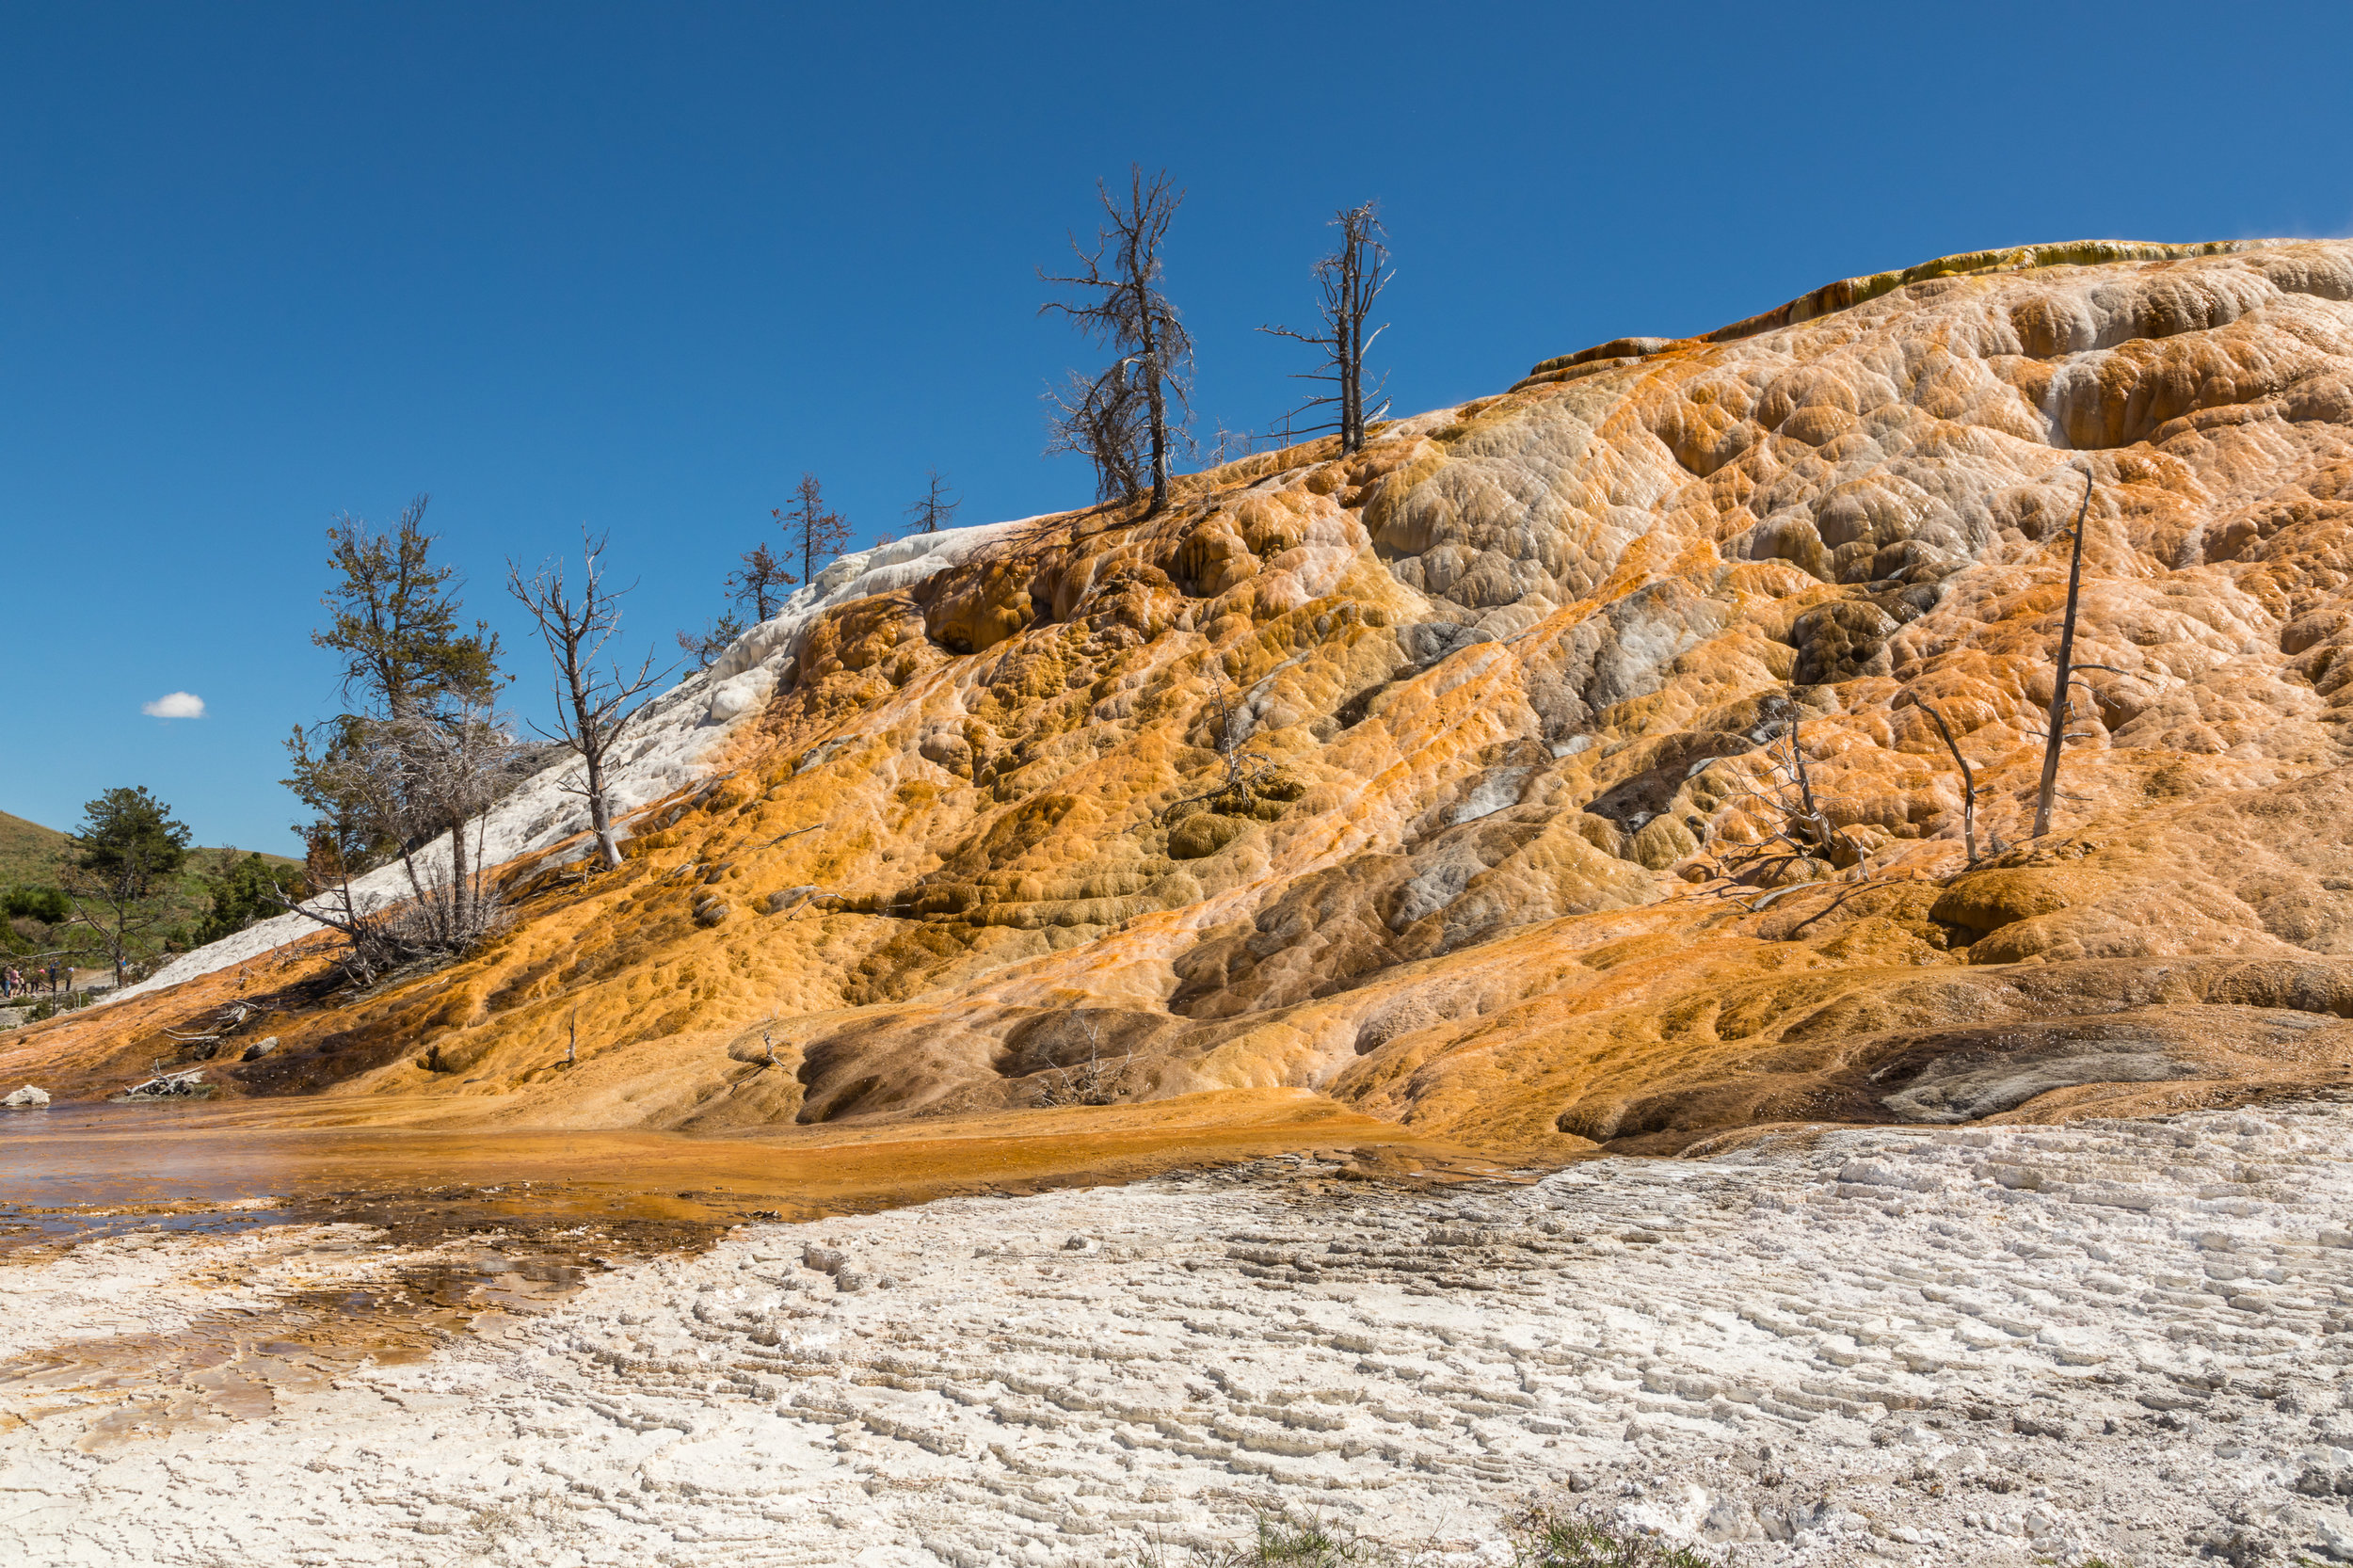 Mammoth Hot Springs, Yellowstone National Park, Image # 7544